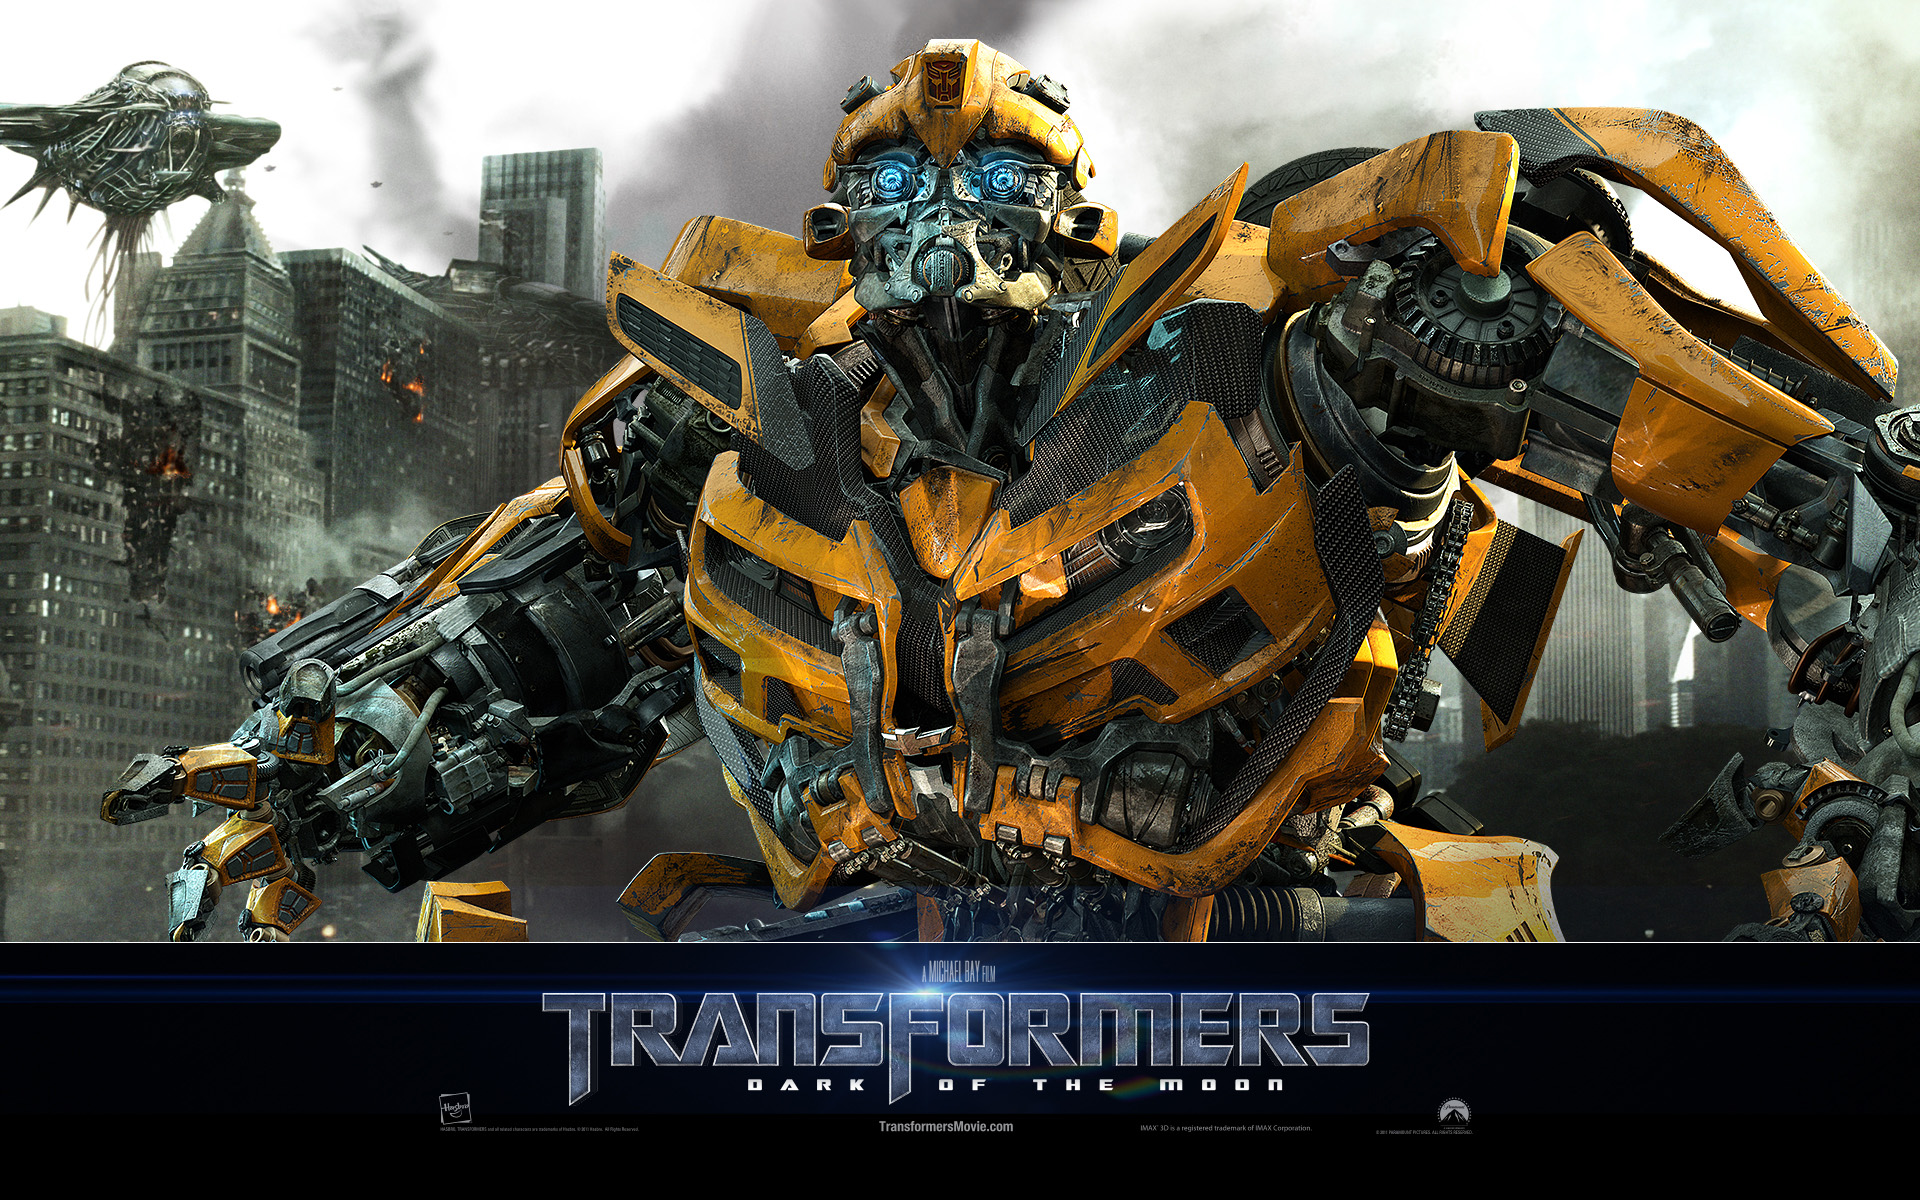 Transformers images Transformers wallpaper photos 34551857 1920x1200